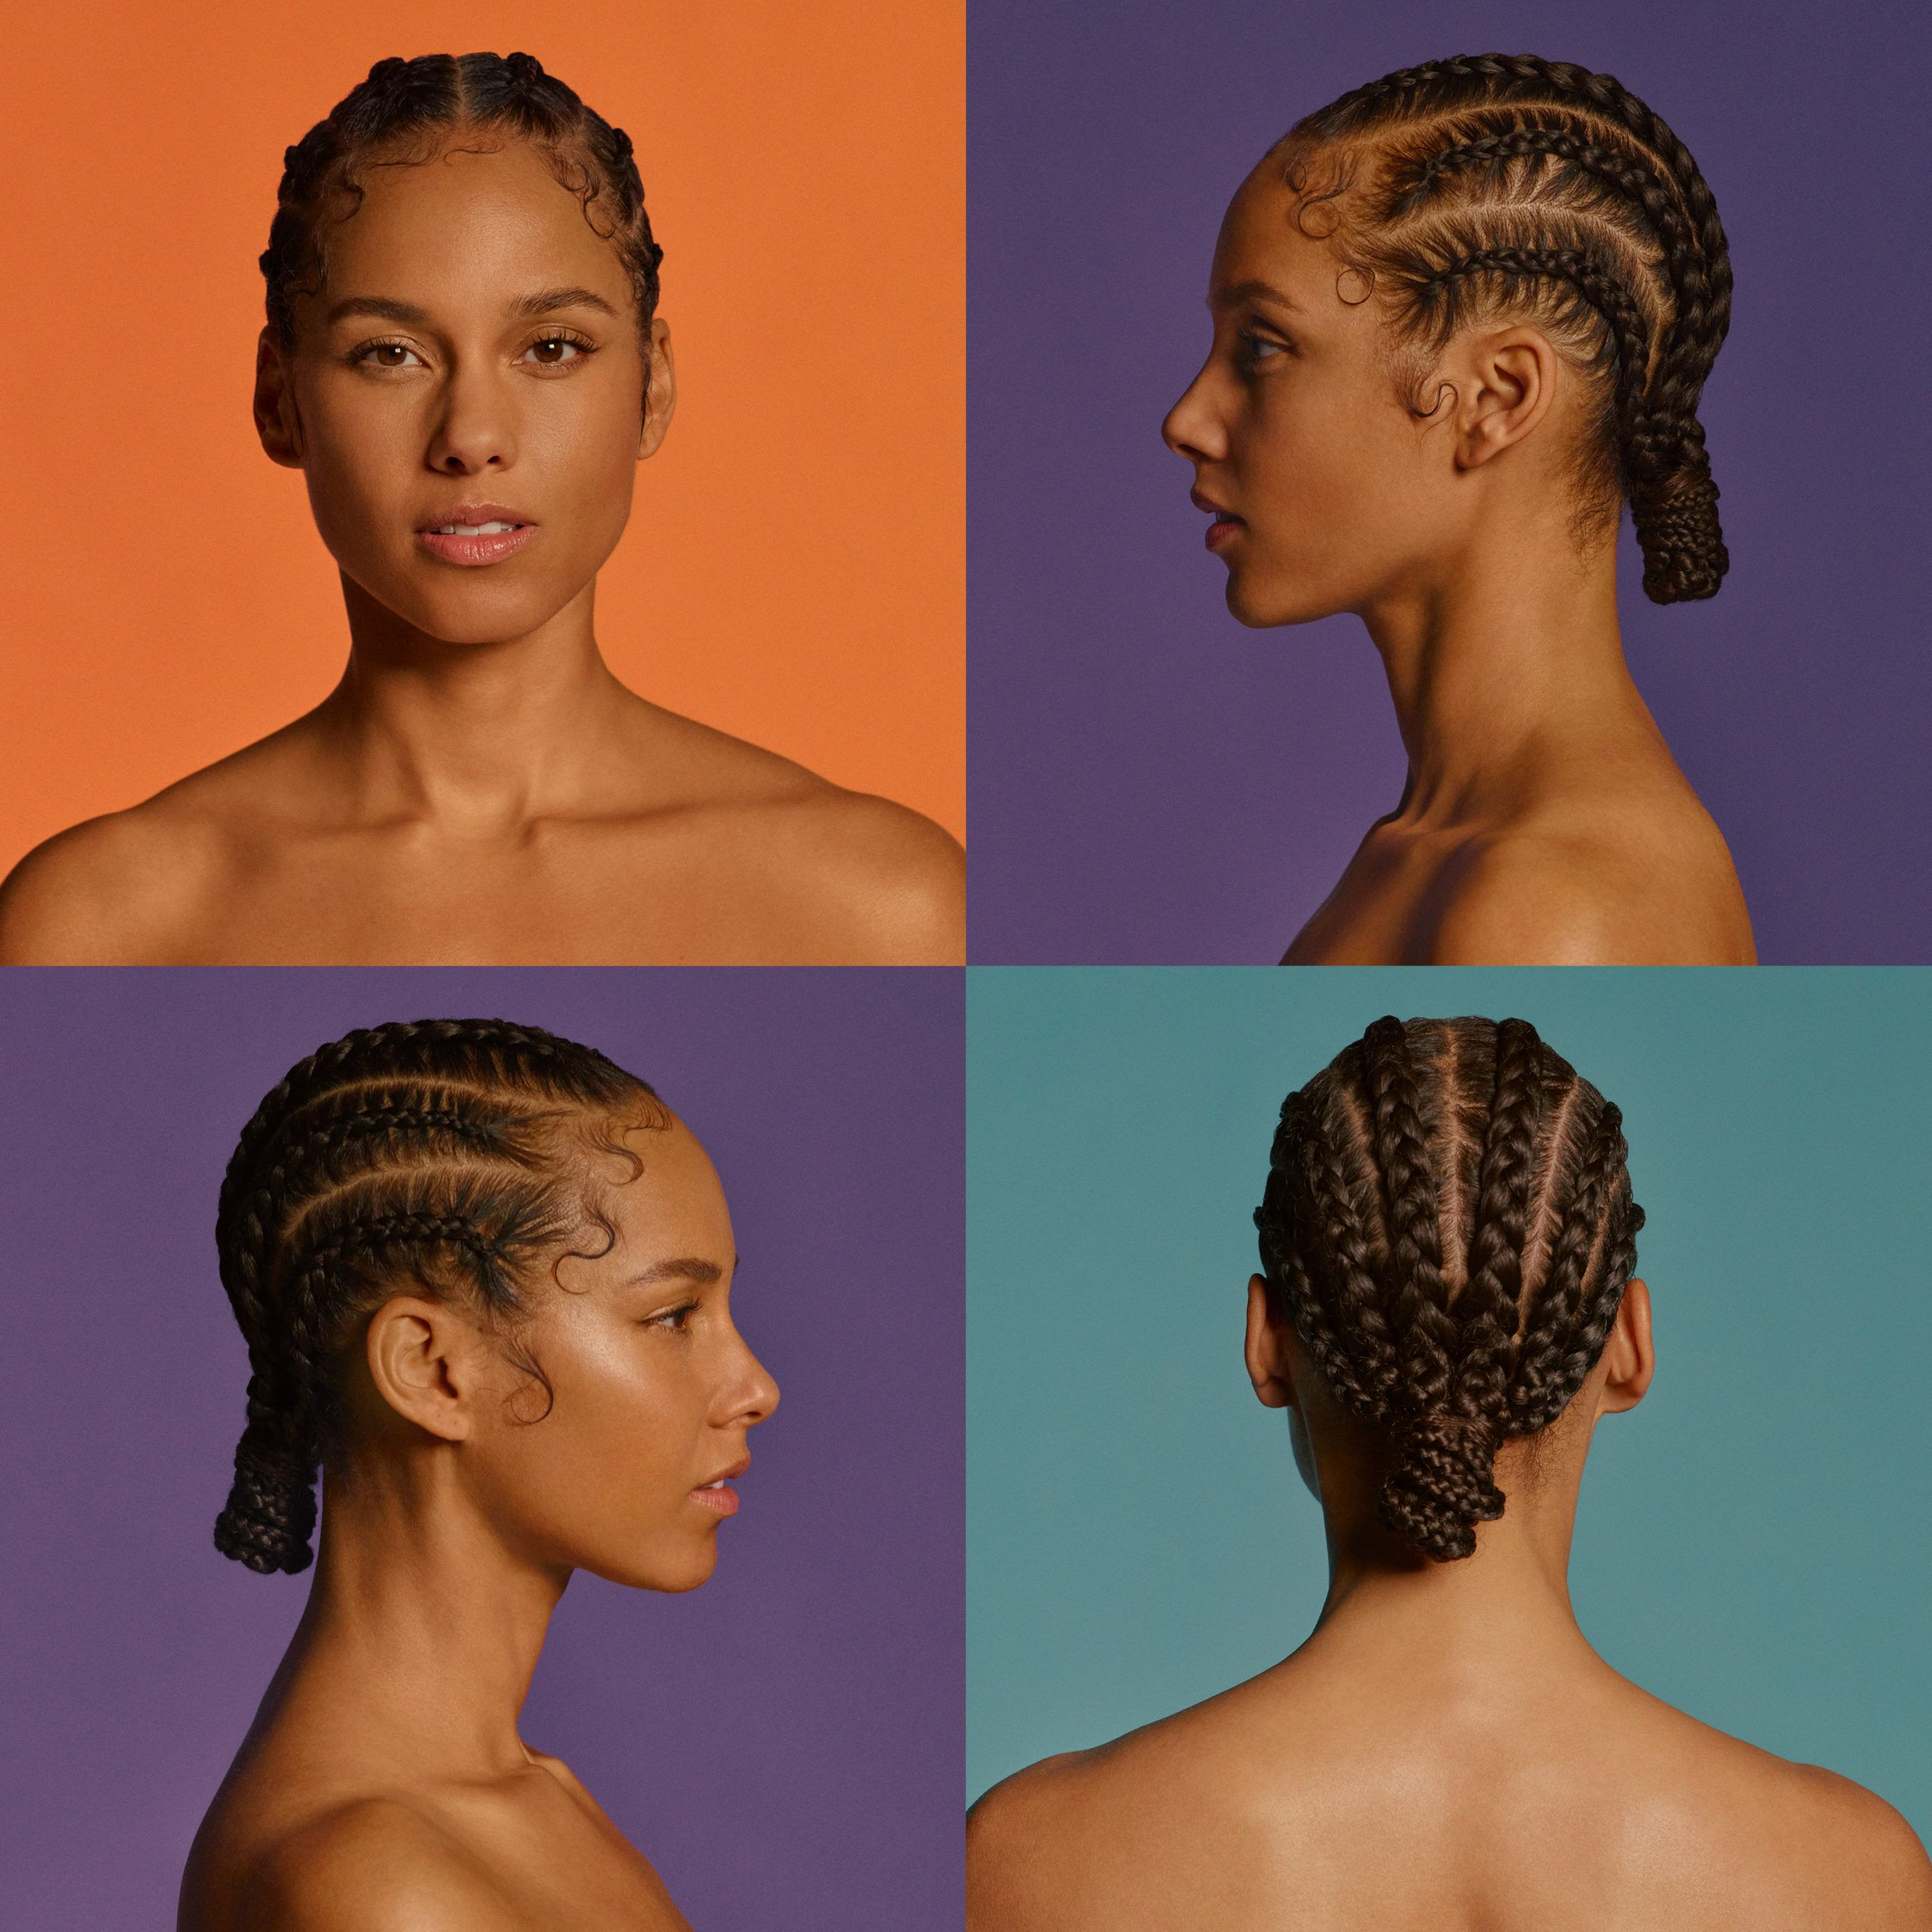 Alicia Keys Announces Her New Album Alicia And 2020 World Tour Pursuit Of Dopeness Alicia Keys Albums Alicia Keys Braids Alicia Keys